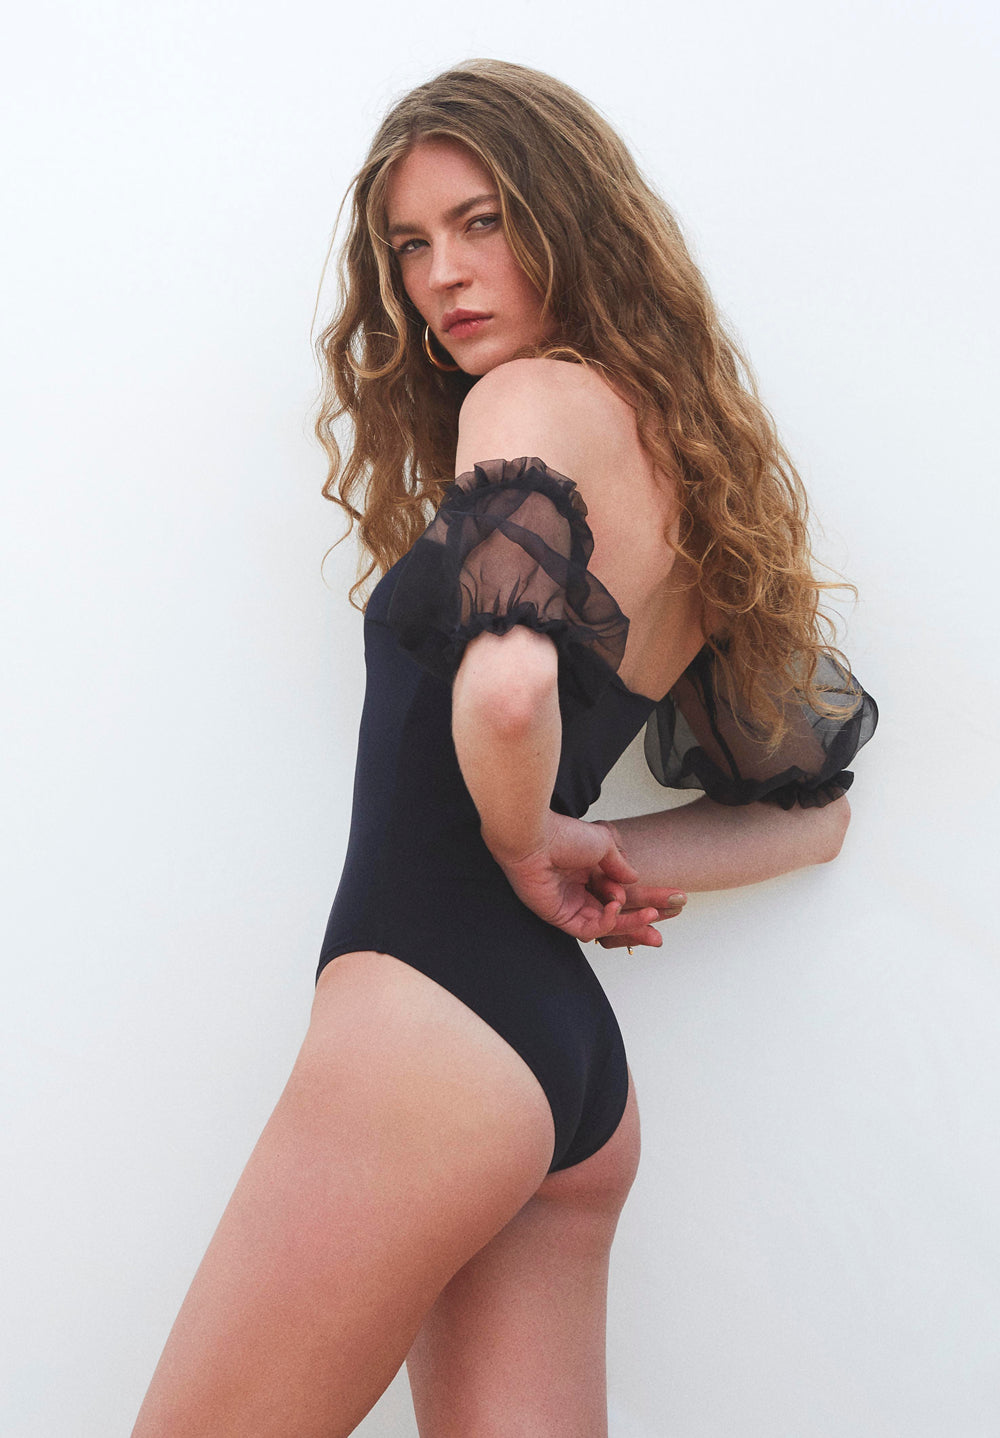 Sandshaped - Margot One Piece - Luxe Cartel